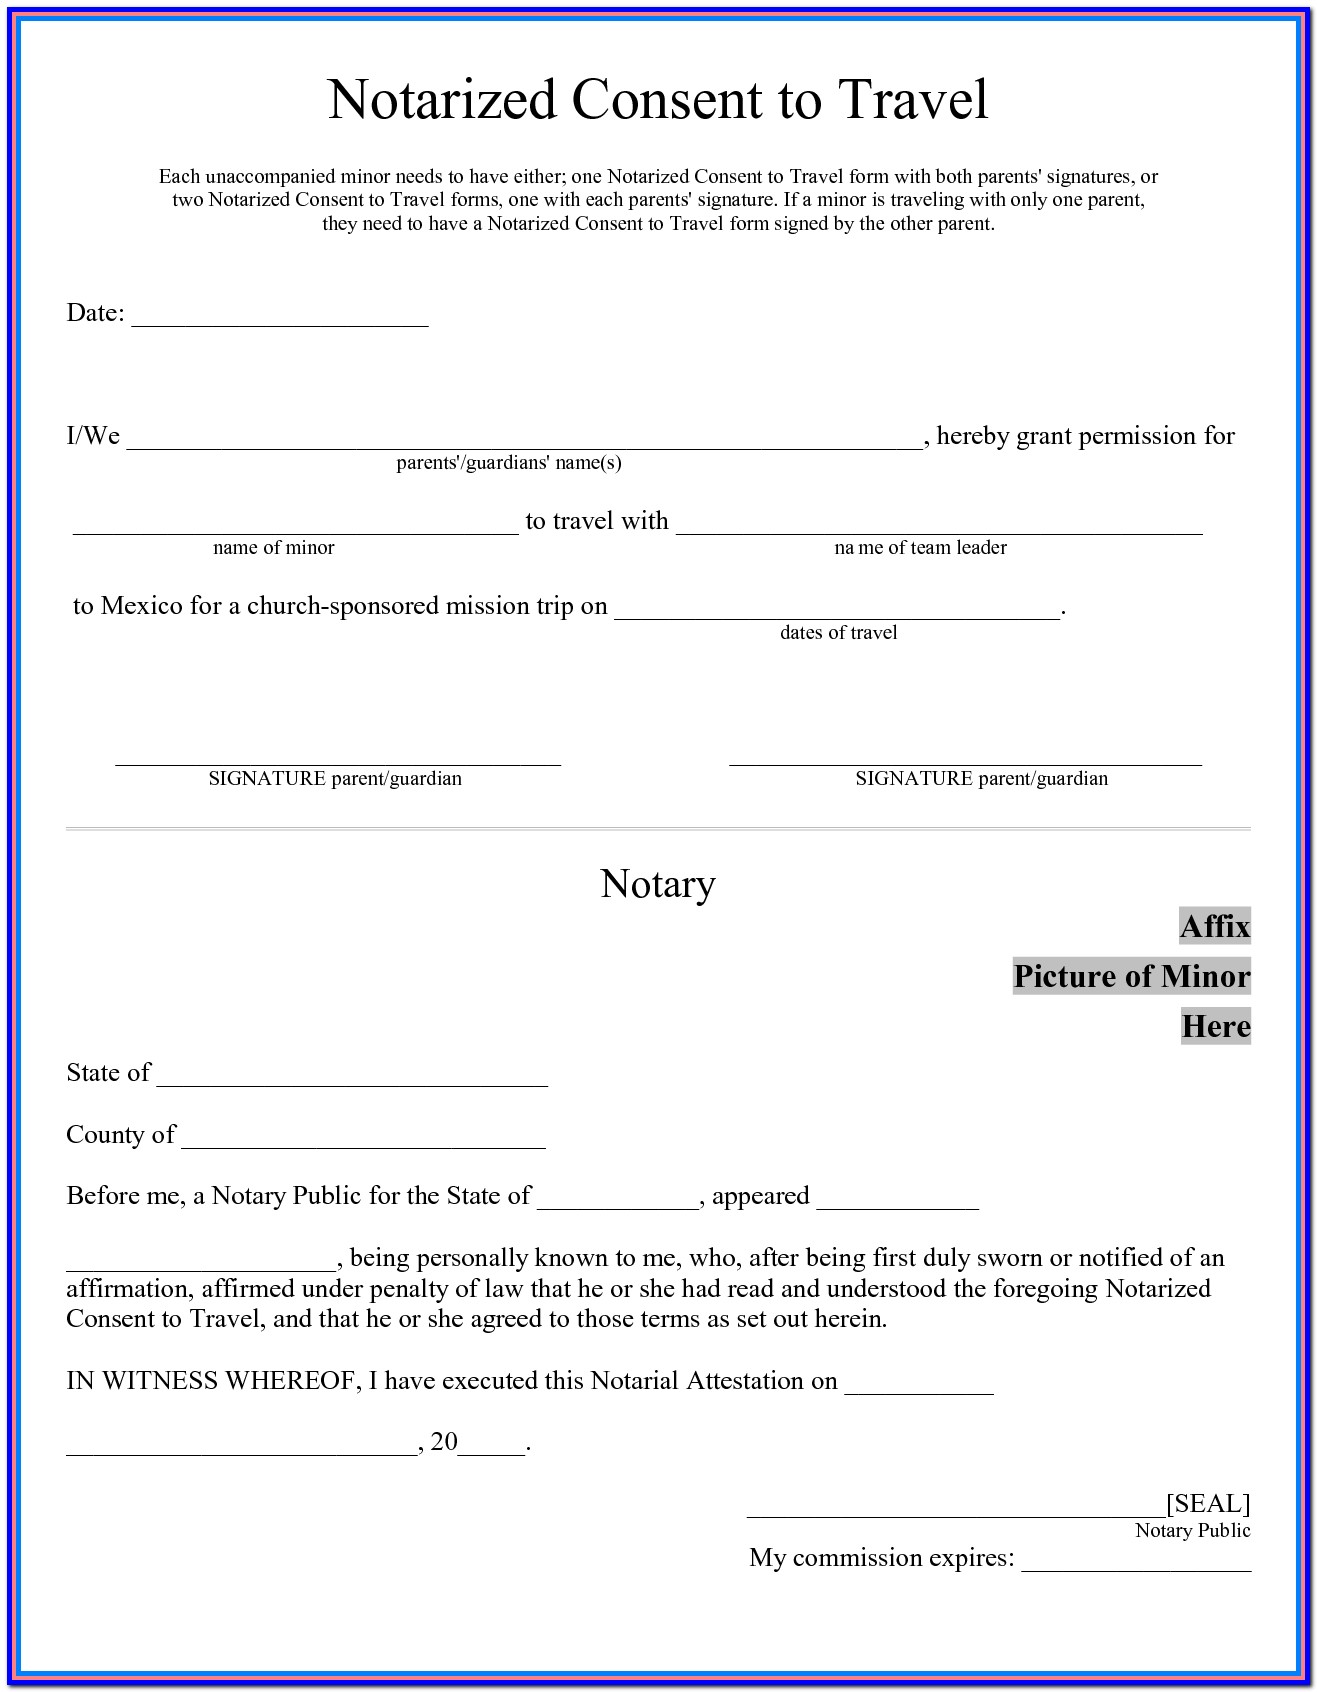 Travel Consent Form For Minor Traveling With One Parent Canada